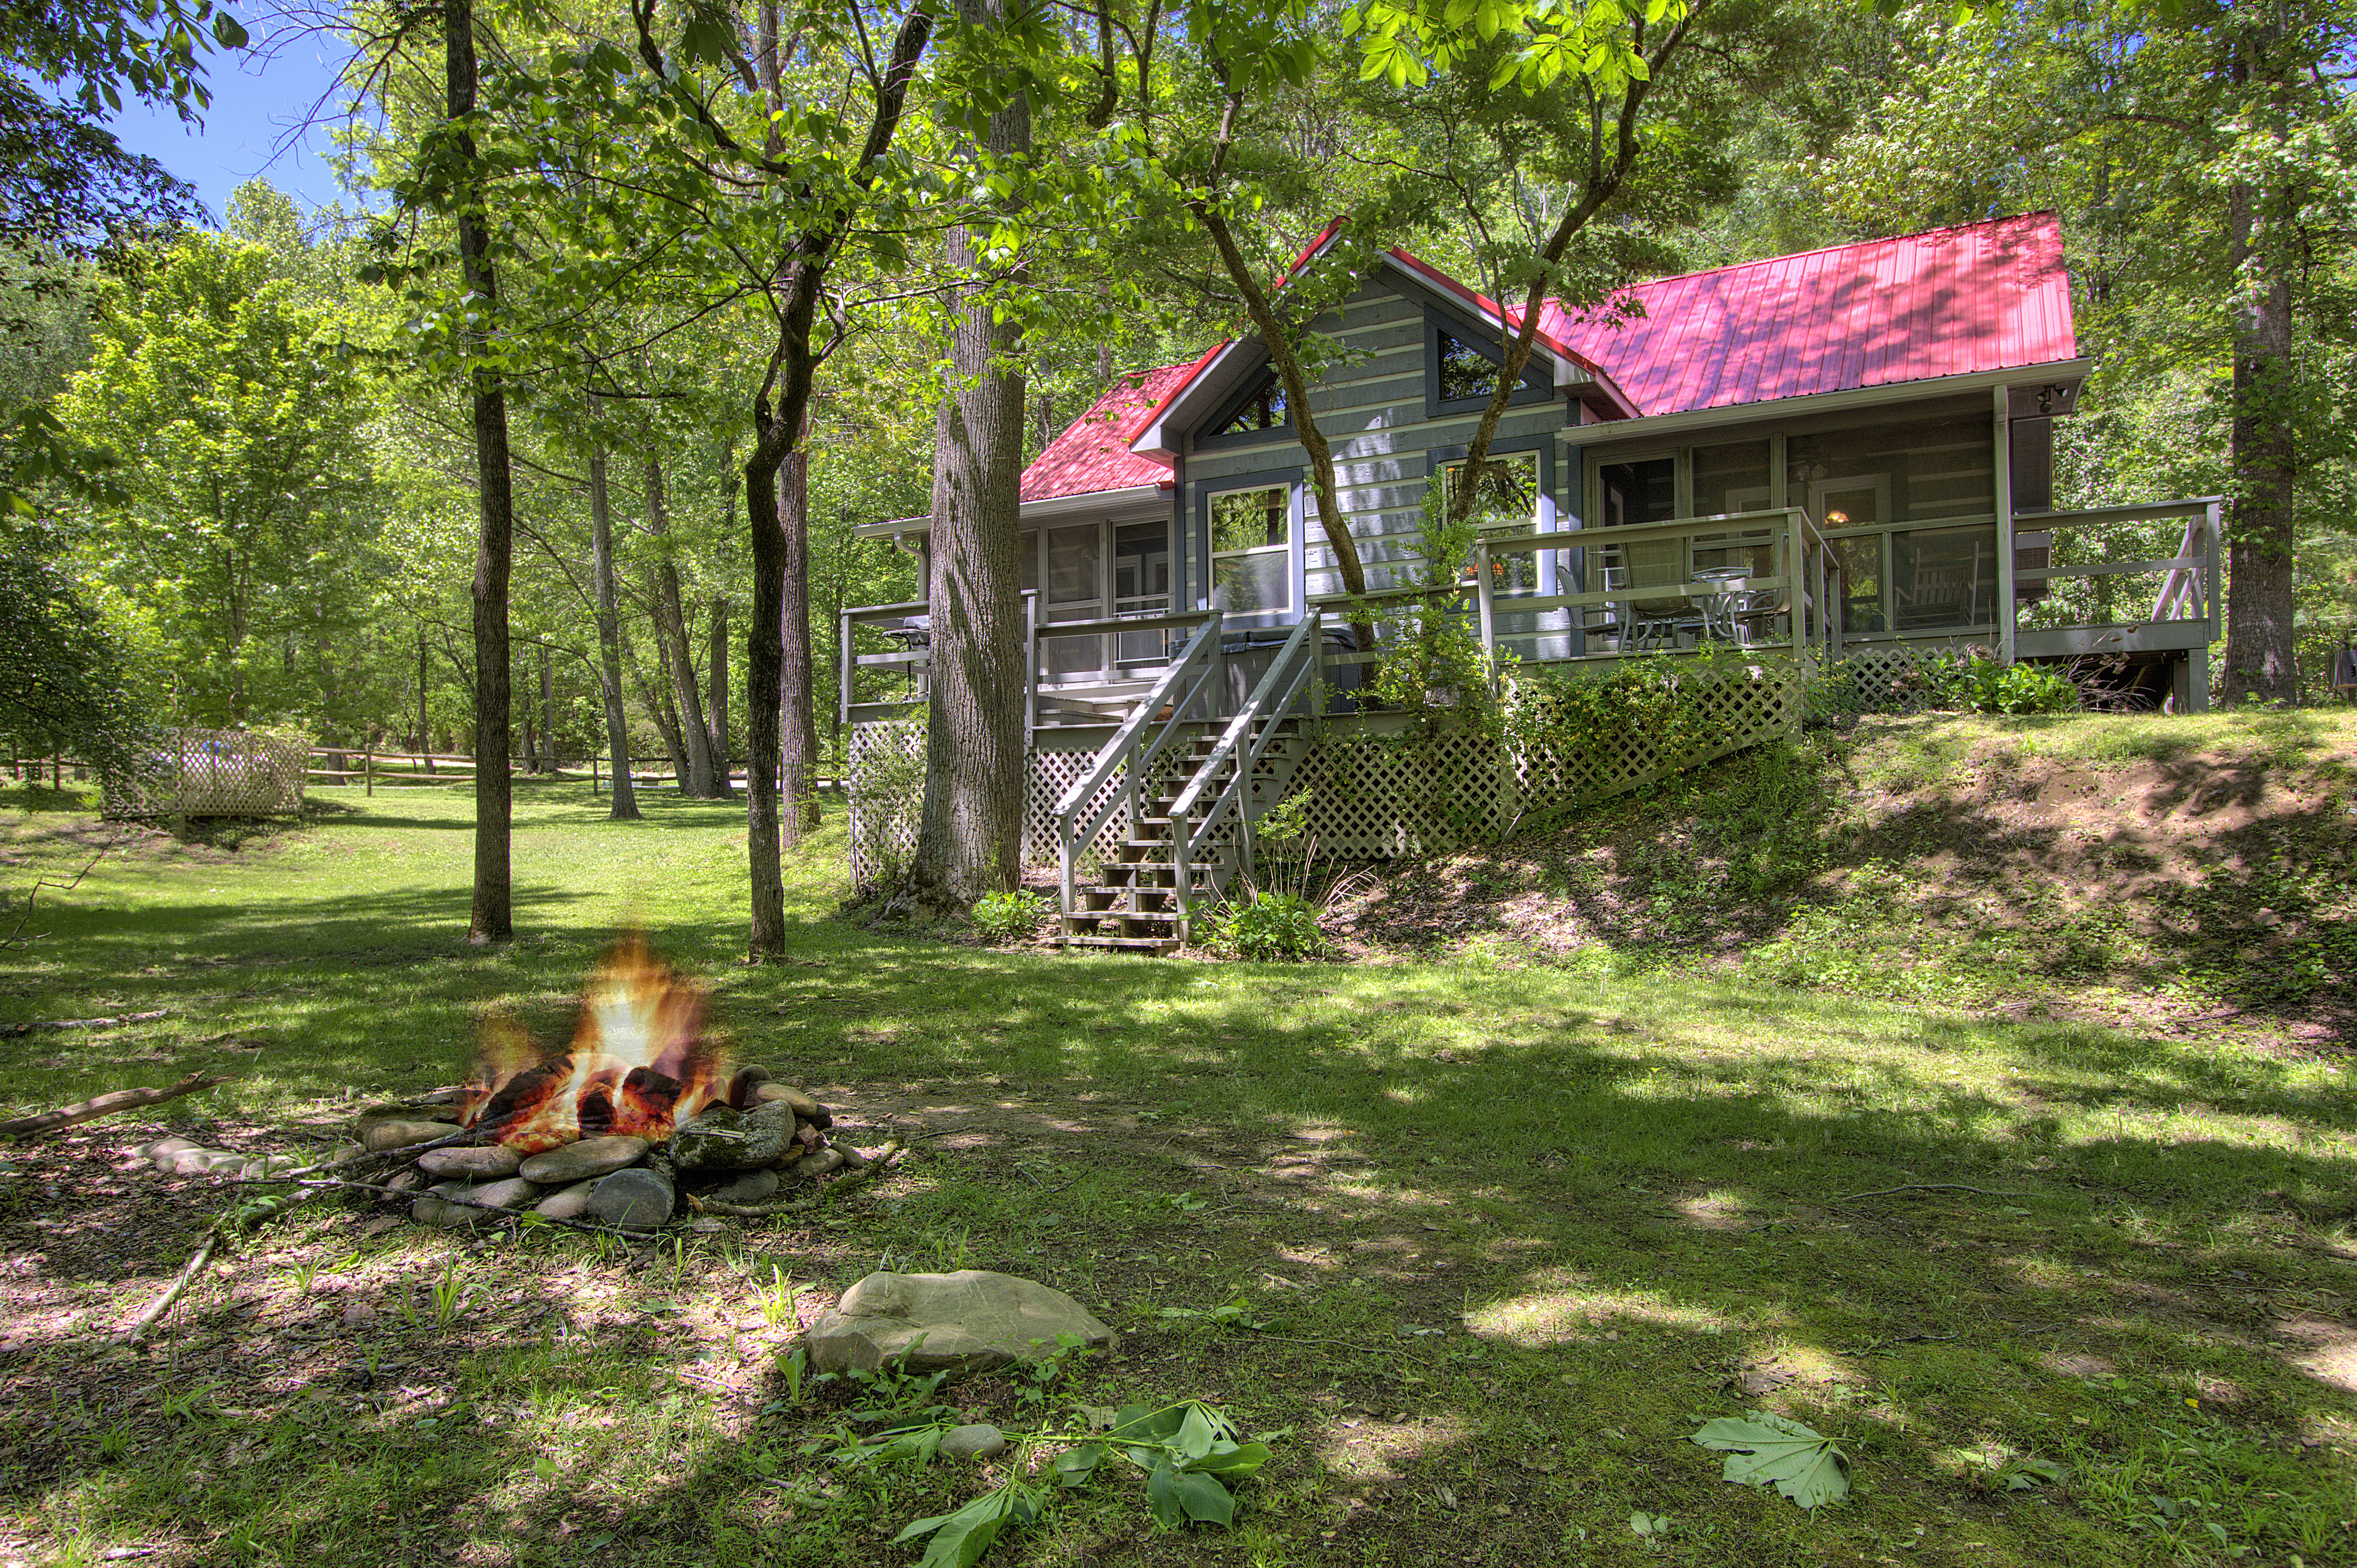 luxury lake rental in of rentals mountain pin cabins pinterest vacation ridge blue cabin and north july georgia laurel